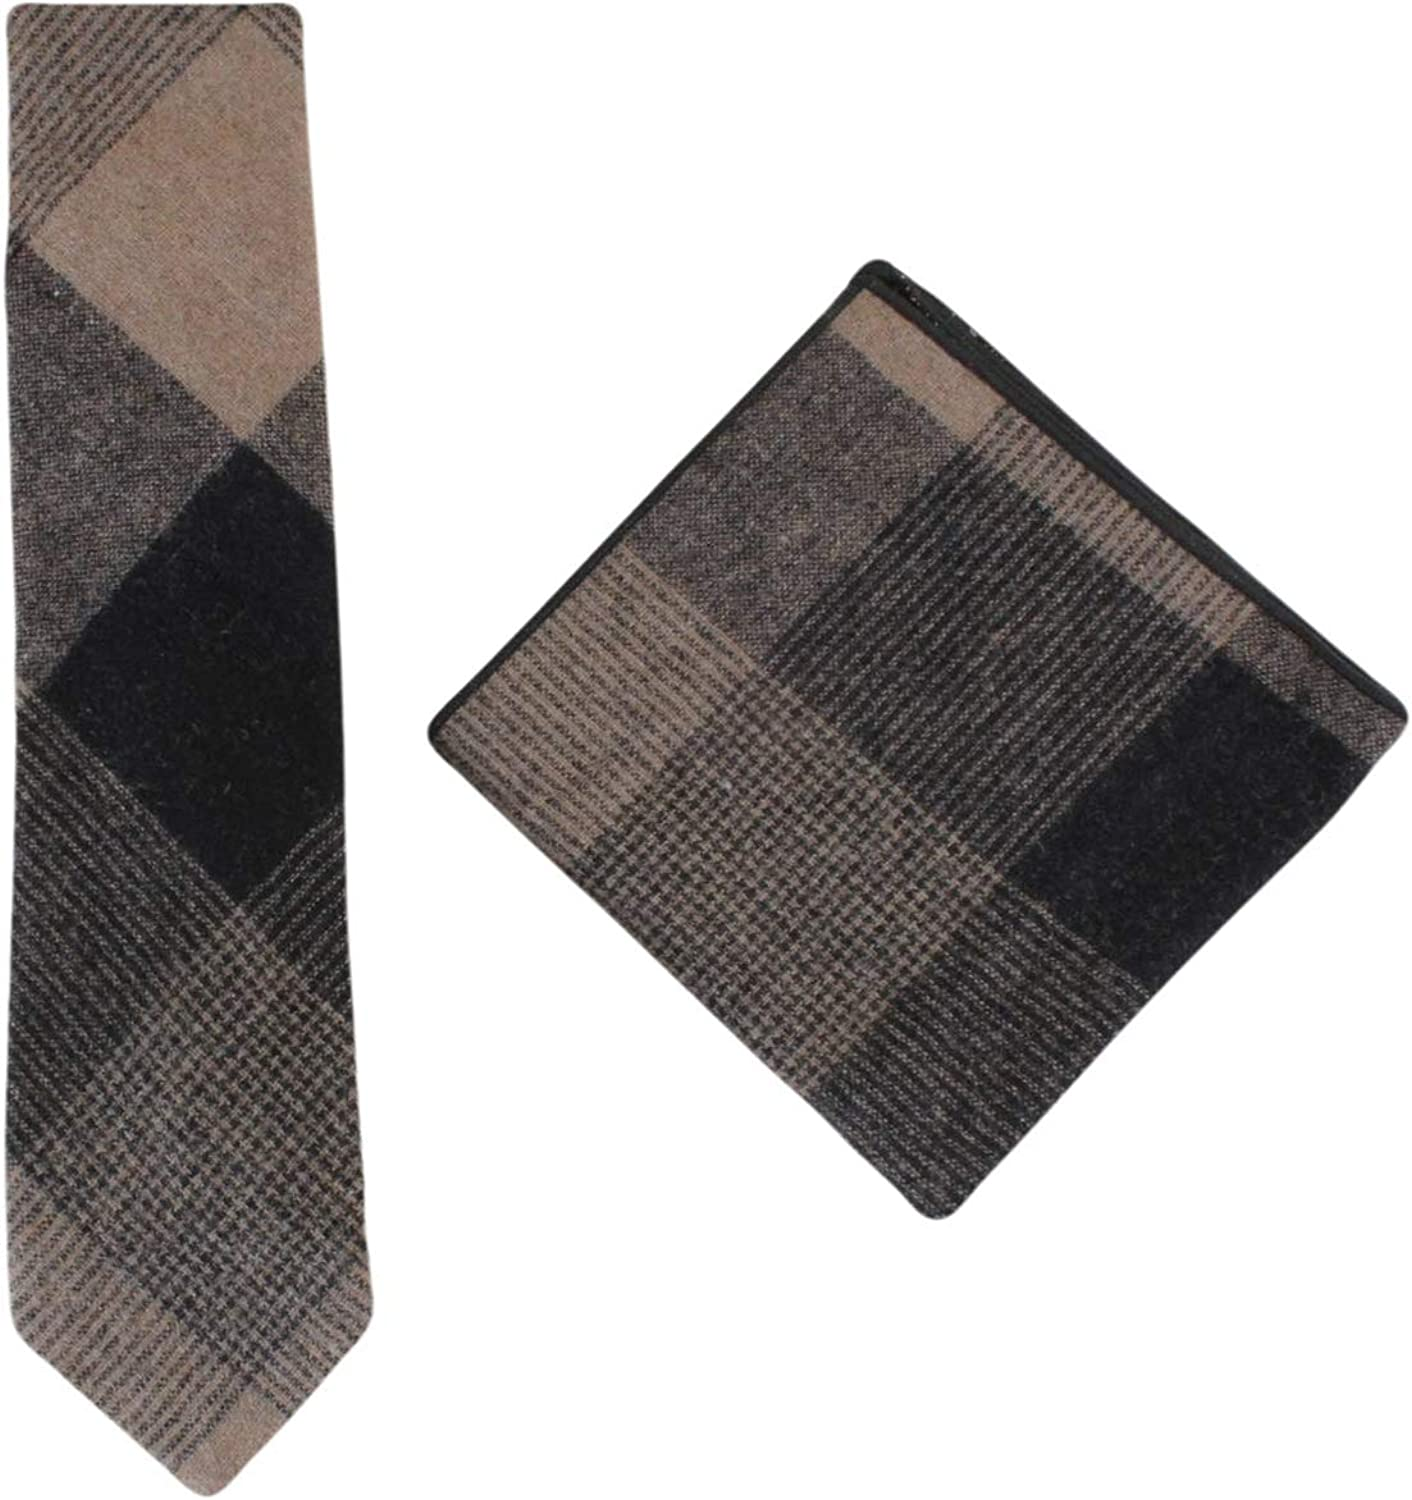 Knightsbridge Neckwear Mens Large Check Tie and Pocket Square Set - Beige Brown